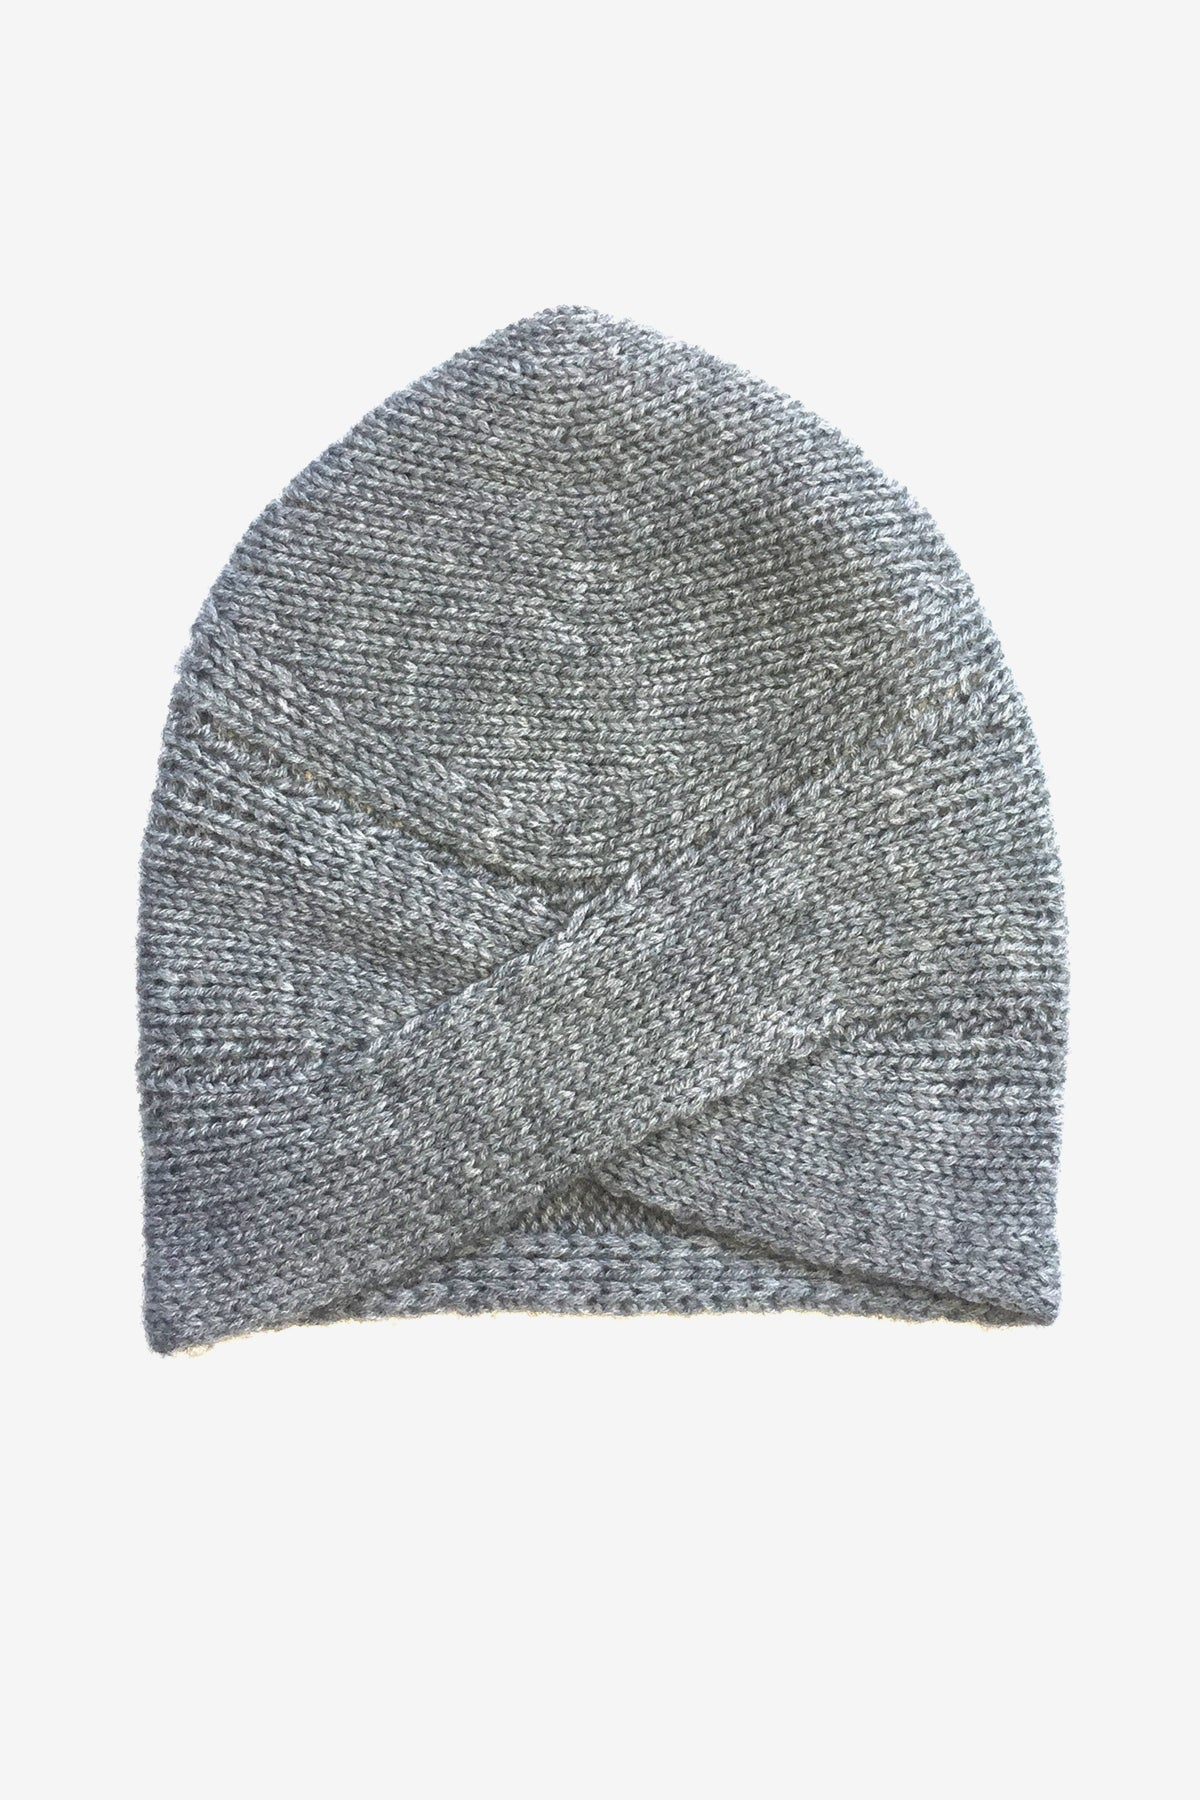 Autumn Cashmere Grey Hat